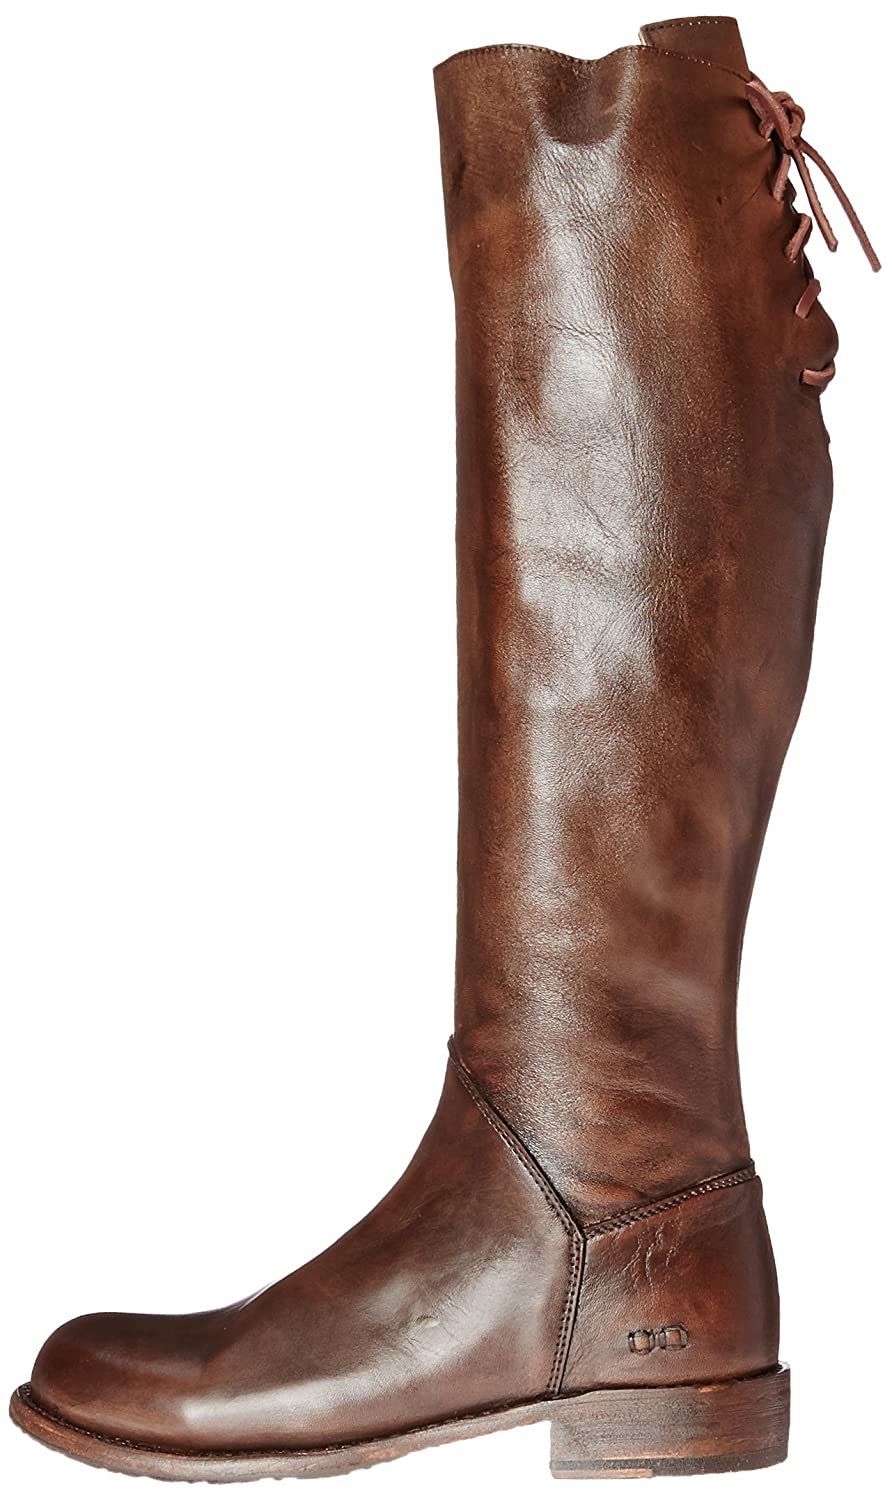 Bed|Stu Women's Manchester Knee-High Boot B00UKELMWG 7.5 B(M) US|Teak Glaze